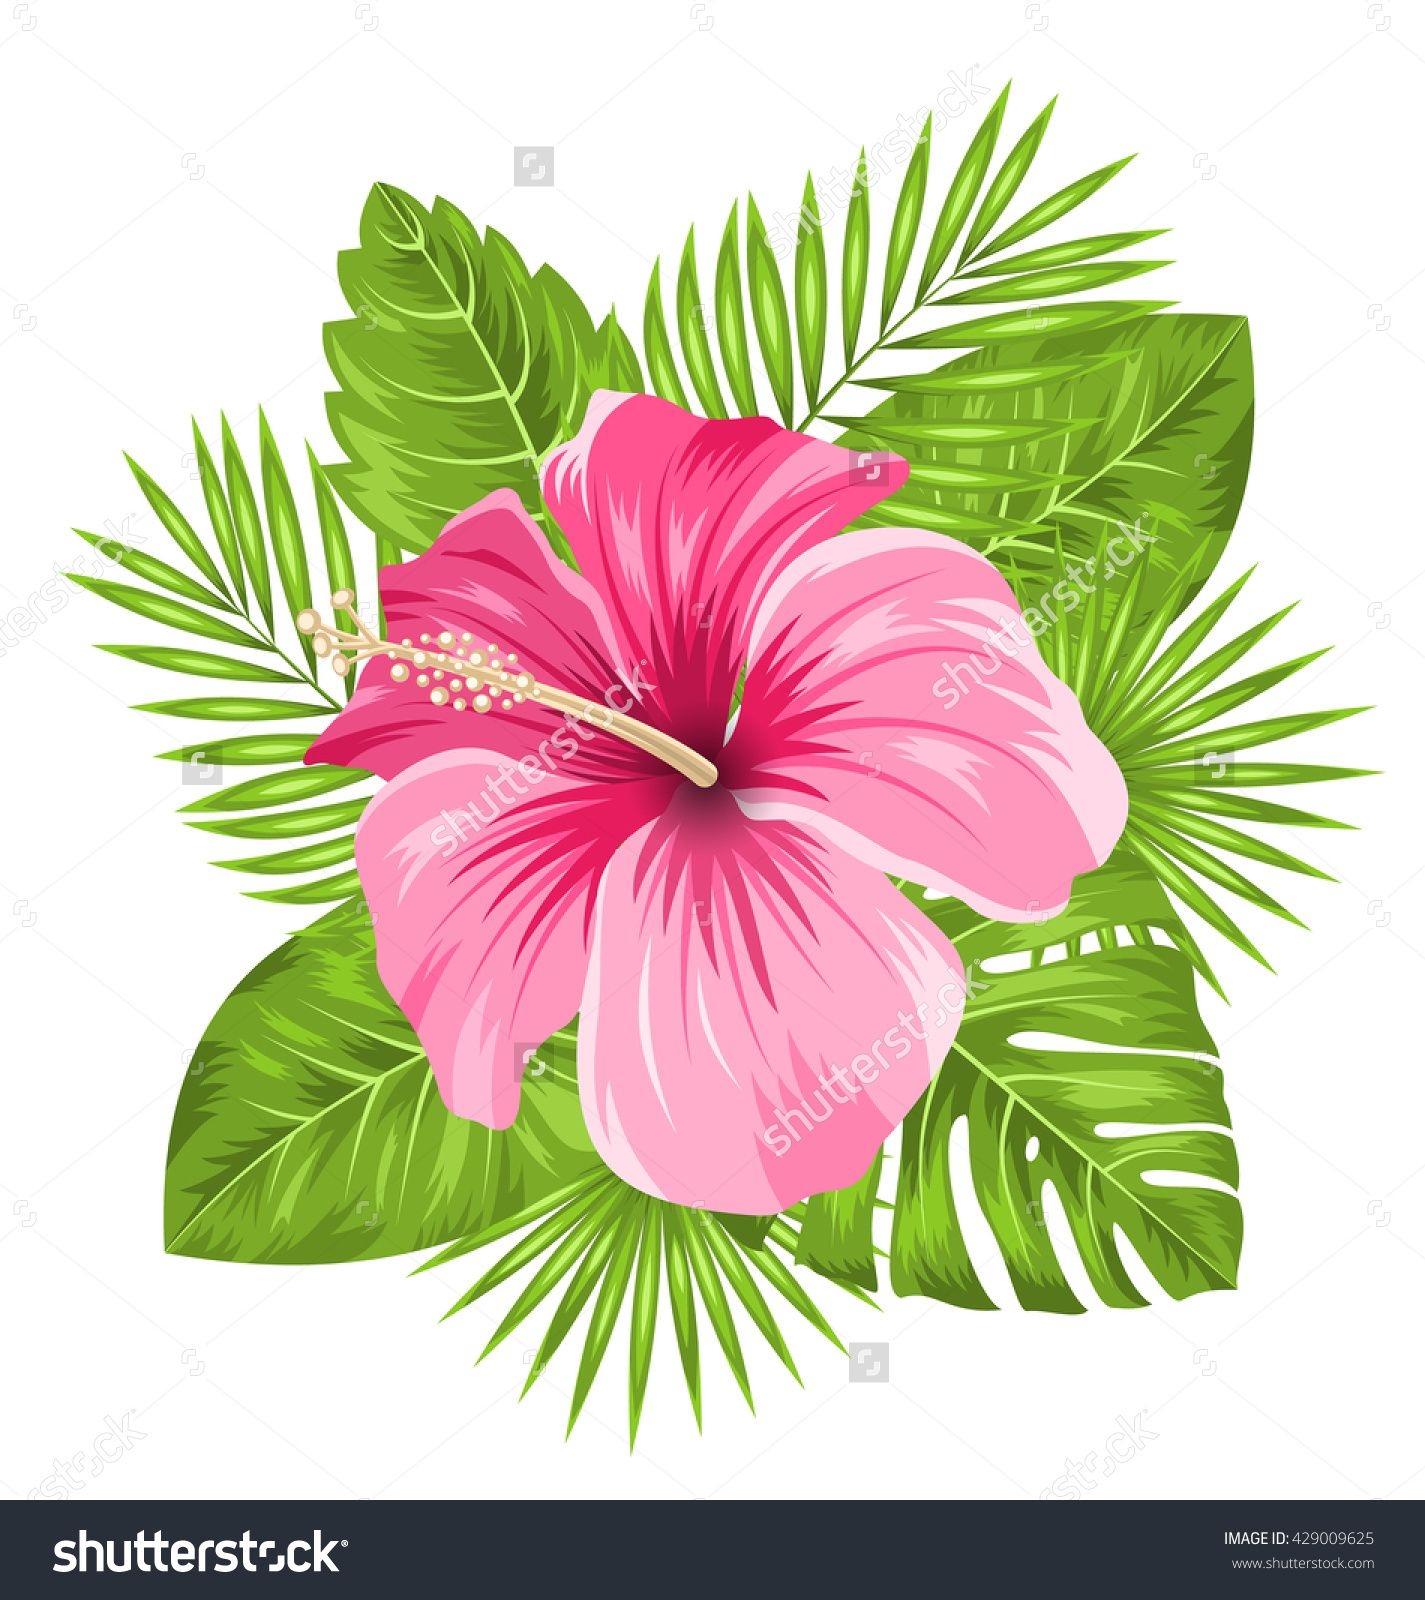 Illustration beautiful pink hibiscus flowers blossom and tropical illustration beautiful pink hibiscus flowers blossom and tropical leaves isolated on white background raster izmirmasajfo Images